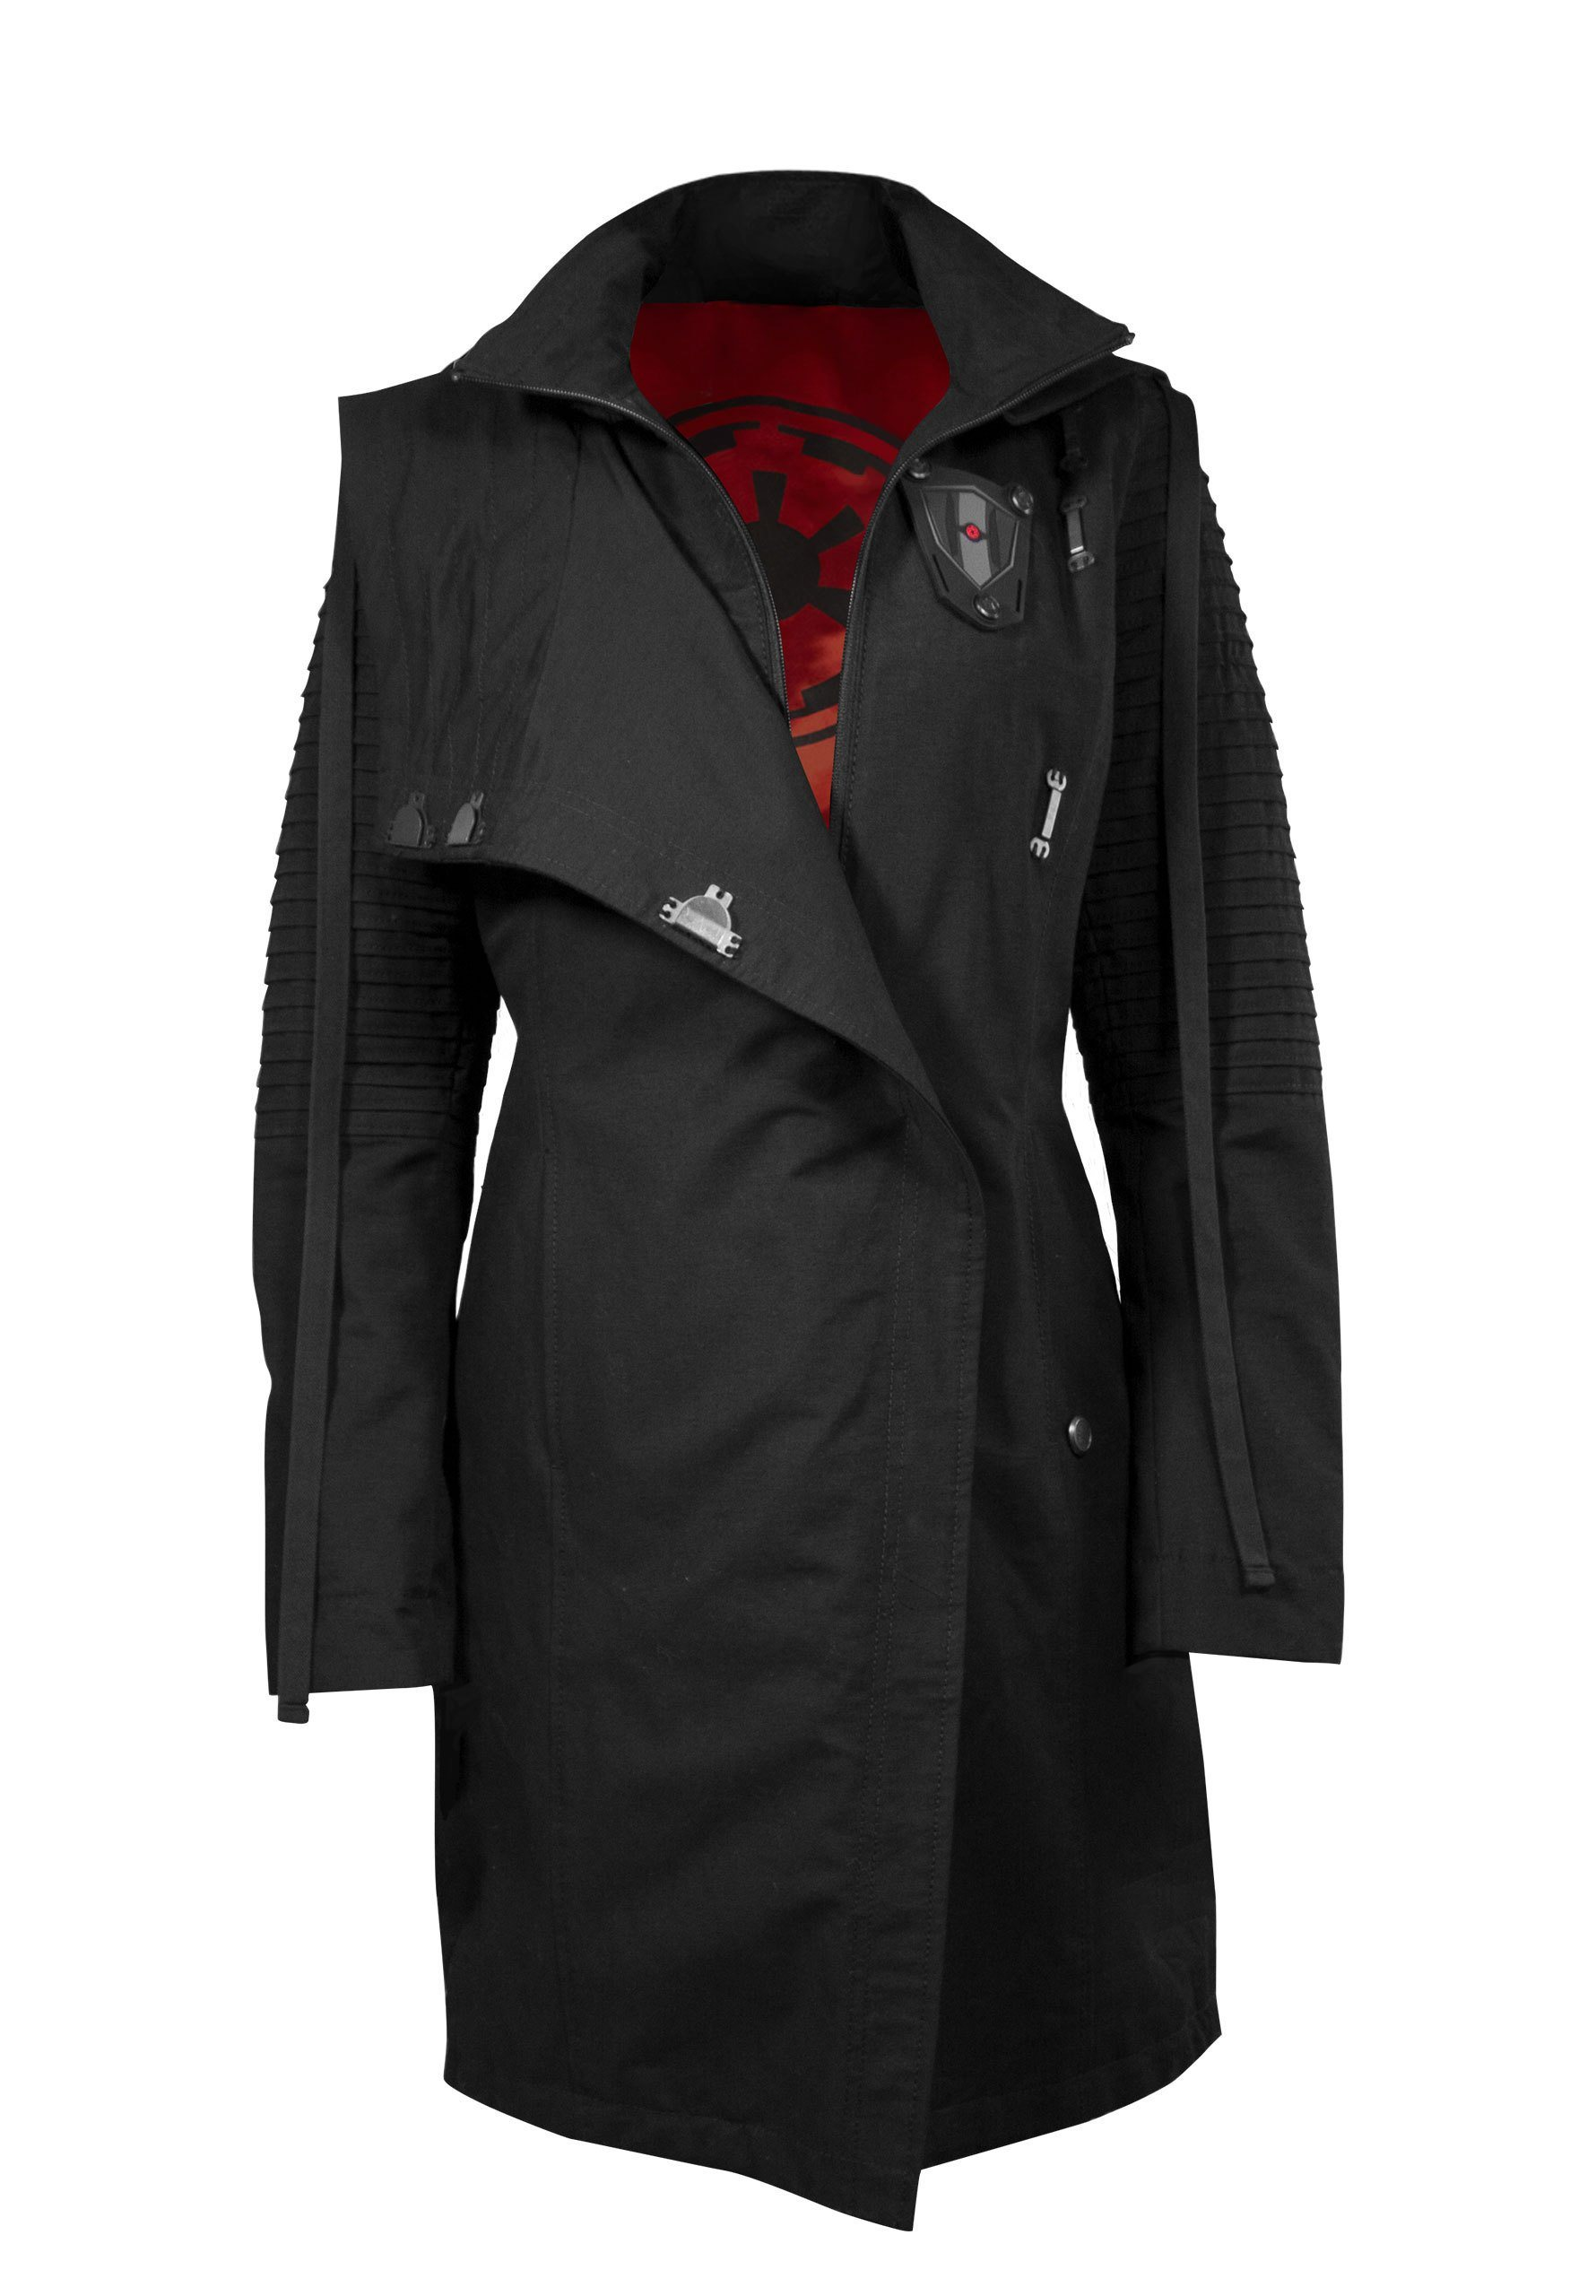 Musterbrand Trenchcoat »Sith Lady« Star Wars Kollektion | Bekleidung > Mäntel > Trenchcoats | Musterbrand